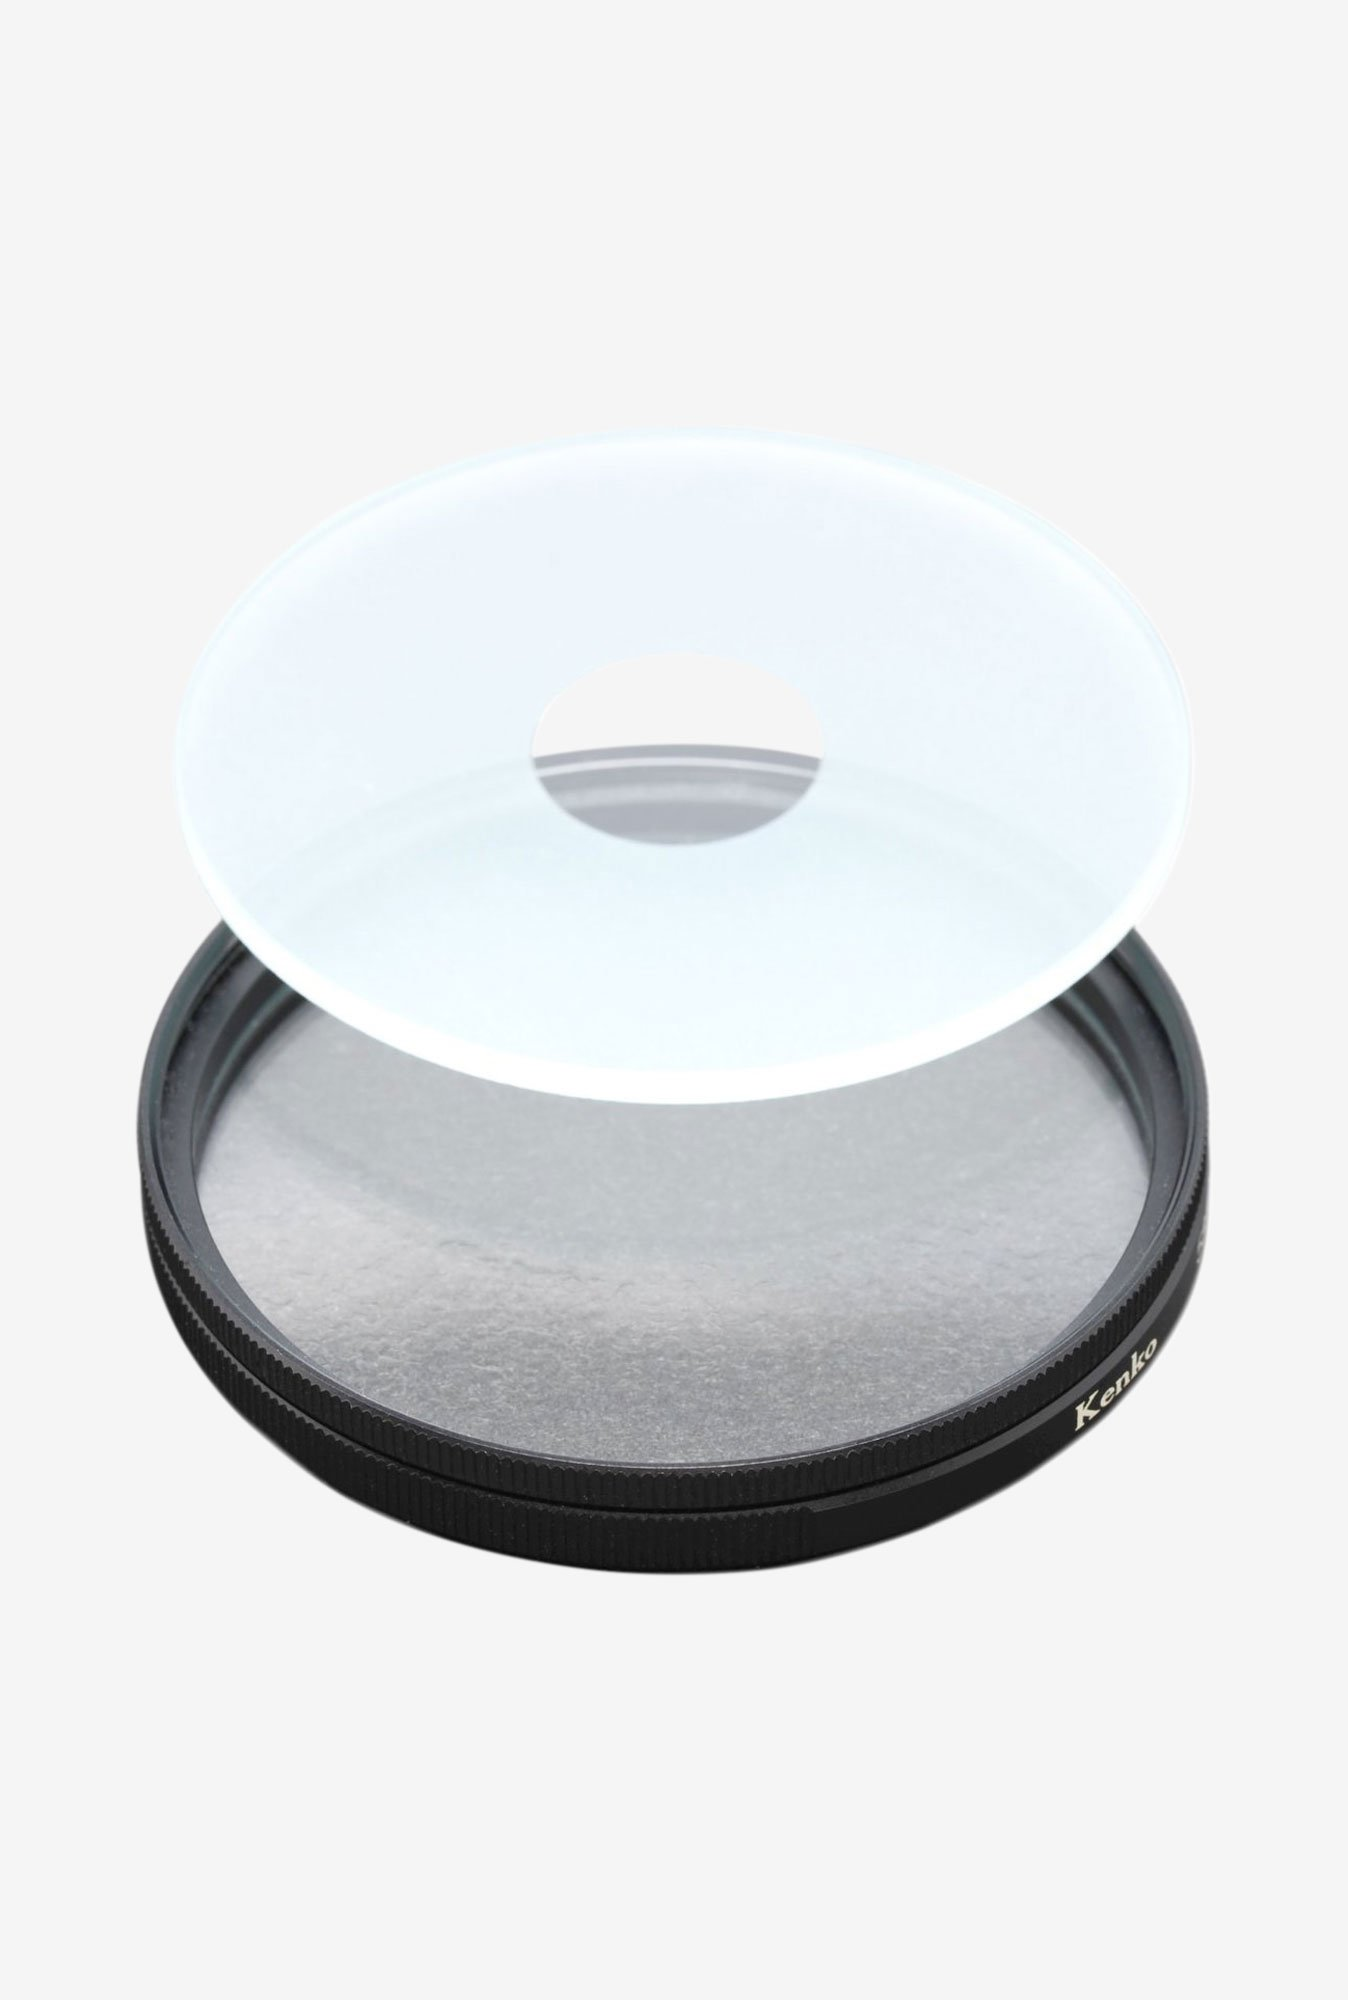 Kenko 72mm Centre Image Camera Lens Filter (Black)